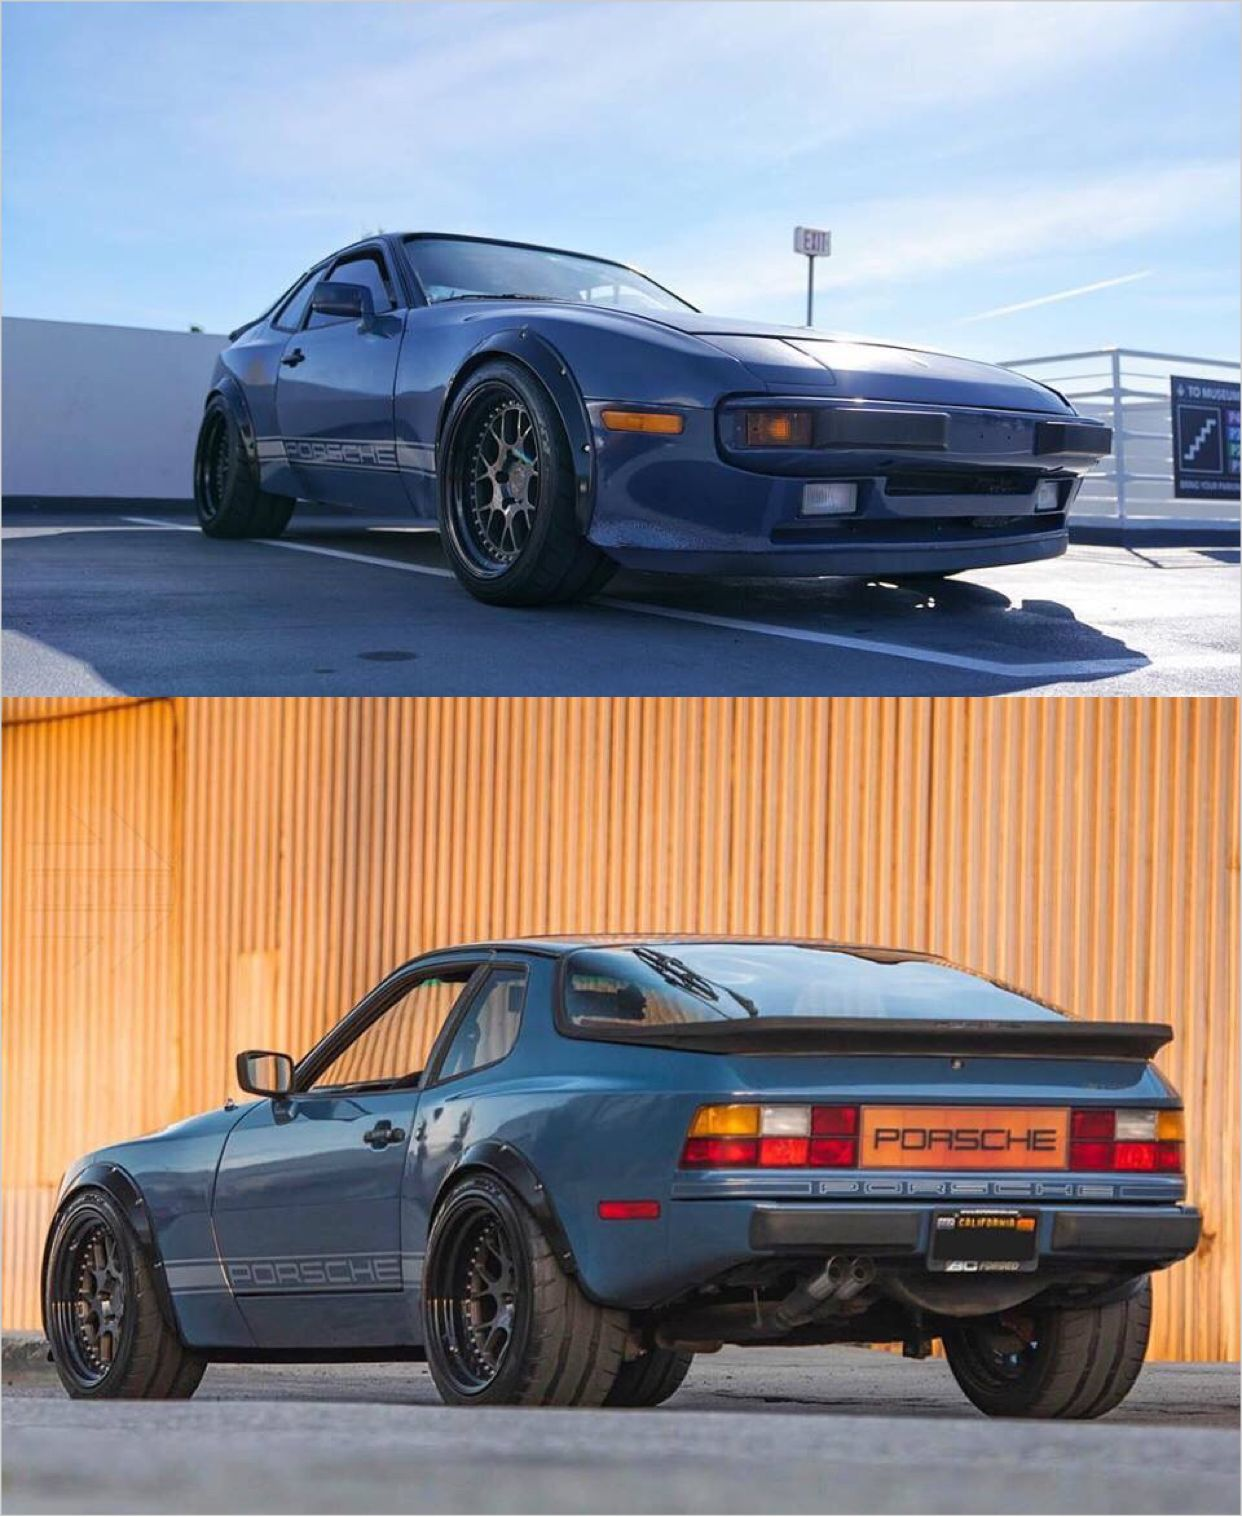 Porsche 944 unique wide,body flares and splitter by